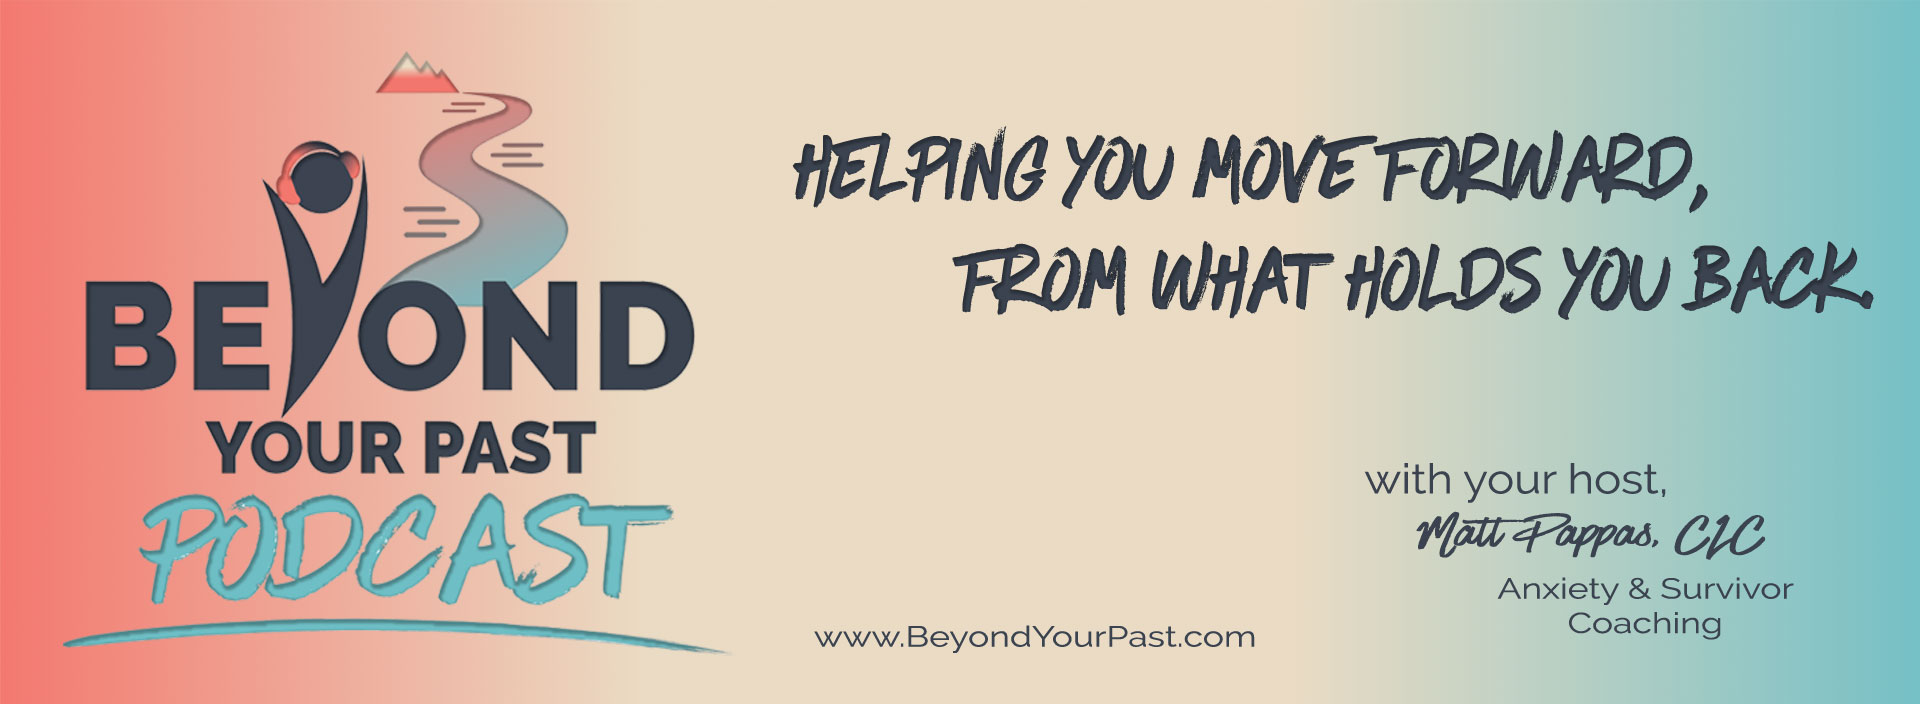 Beyond Your Past podcast for trauma survivors gives their struggles a voice